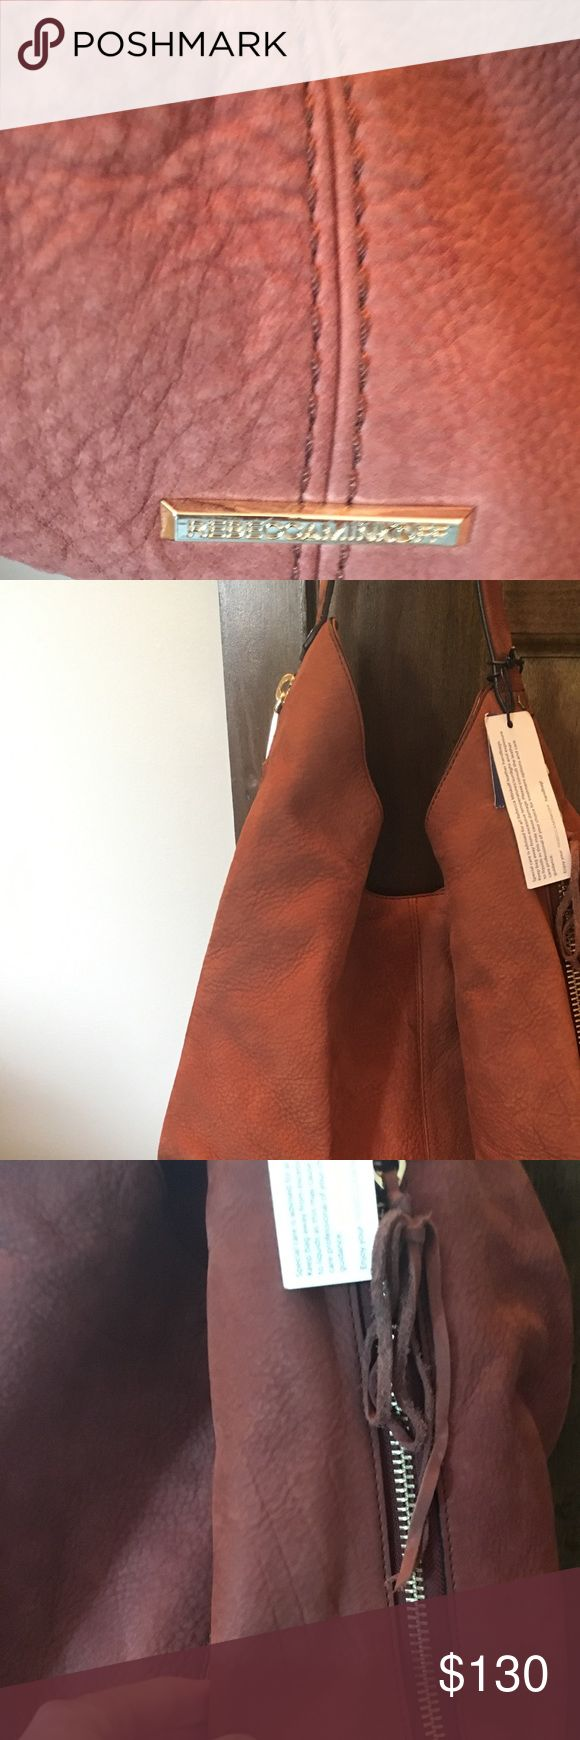 Rebecca minkoff  Bryn hobo- new with tags Brand new- tags still attached. Beautiful chestnut brown- perfect for fall. I got this as a gift and I already have this style in a different color. Retails at Nordstrom for $295. I do not trade. Reasonable offers considered. Rebecca Minkoff Bags Hobos